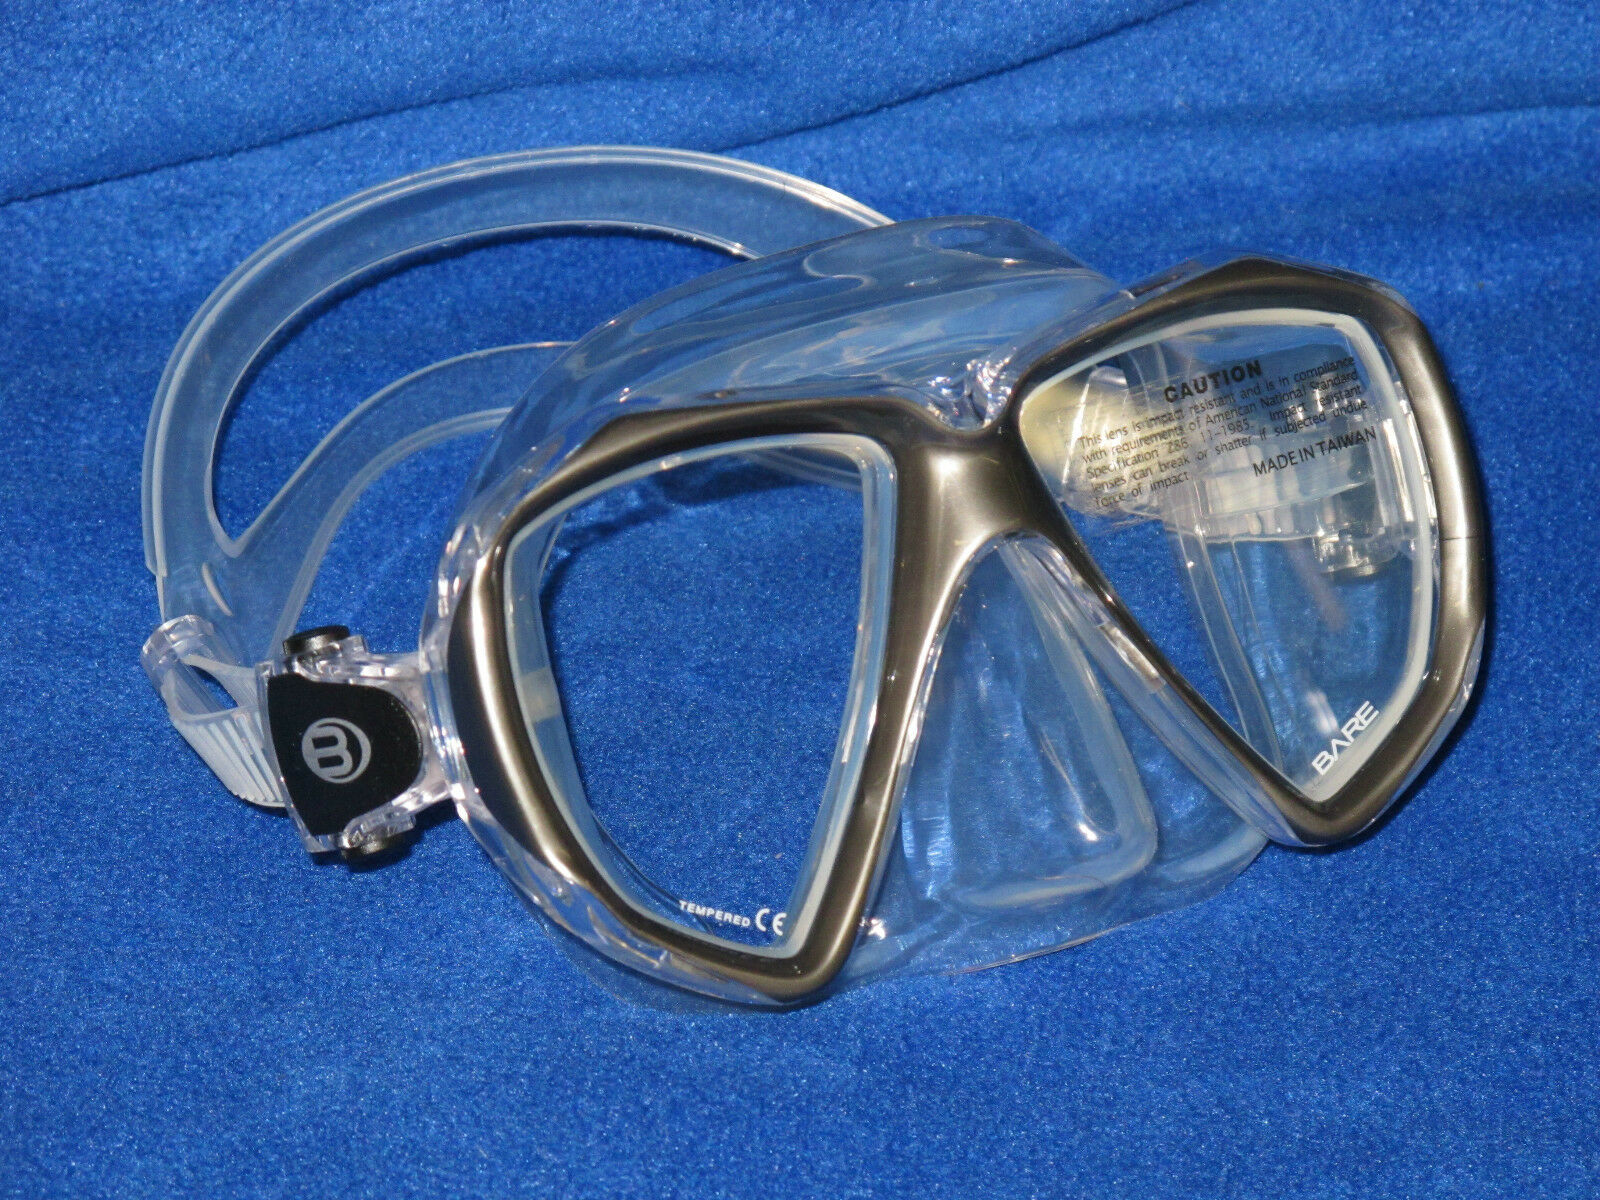 Bare Duo C Scuba Diving and Snorkeling Mask - Titanium frame color